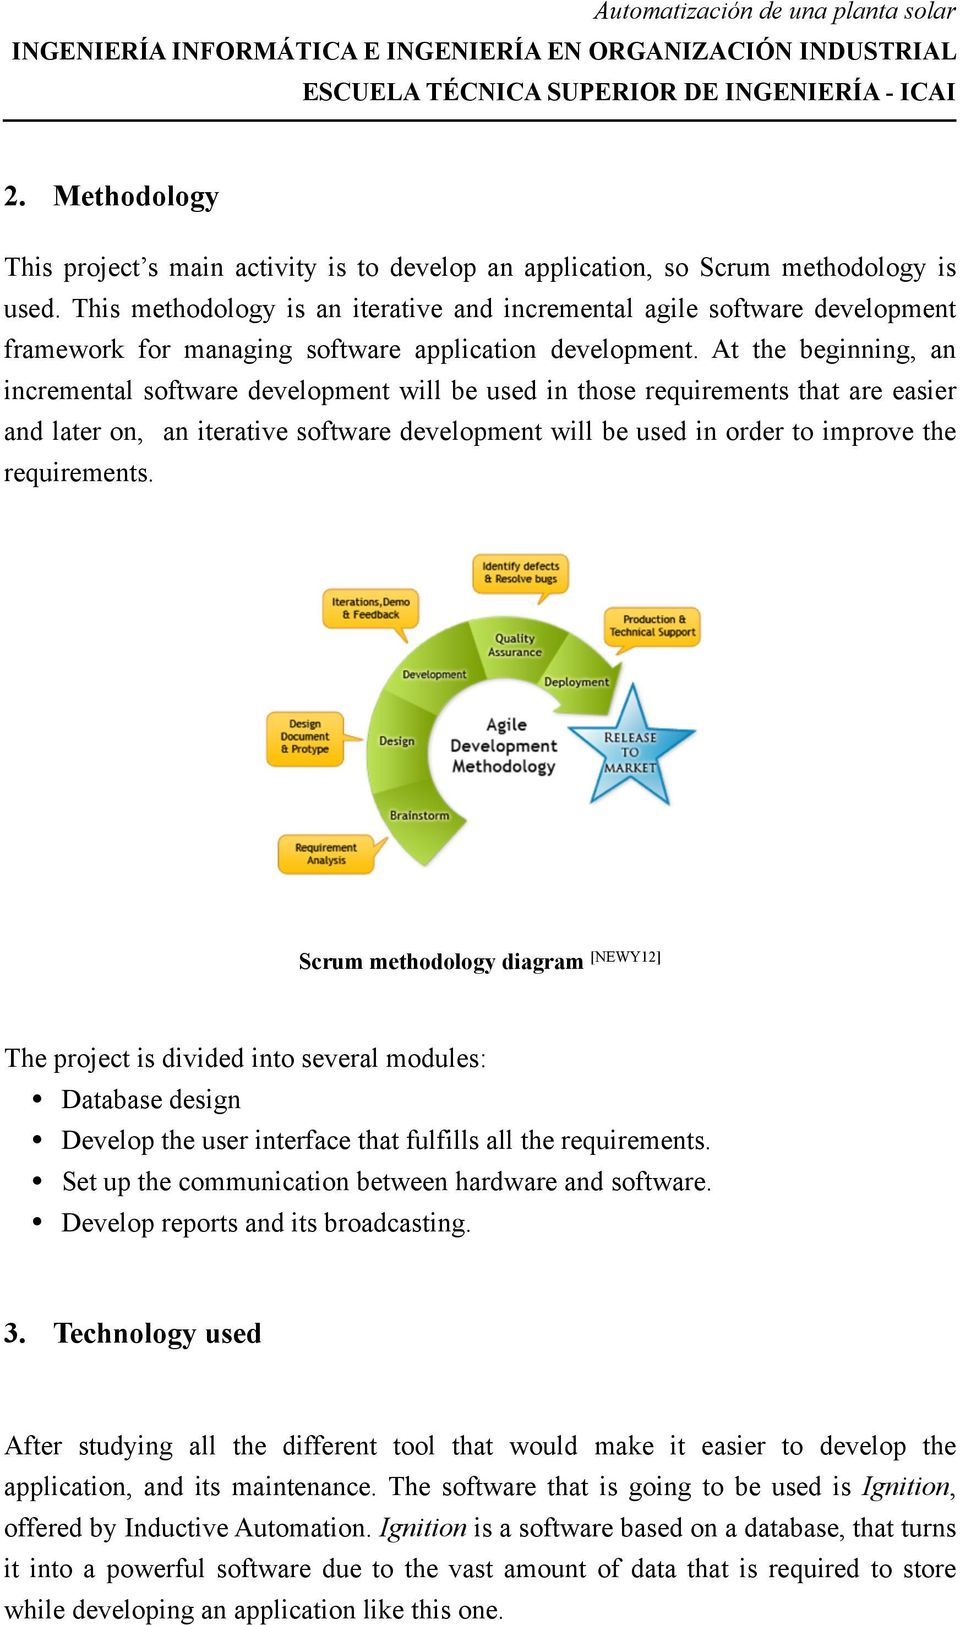 At the beginning, an incremental software development will be used in those requirements that are easier and later on, an iterative software development will be used in order to improve the